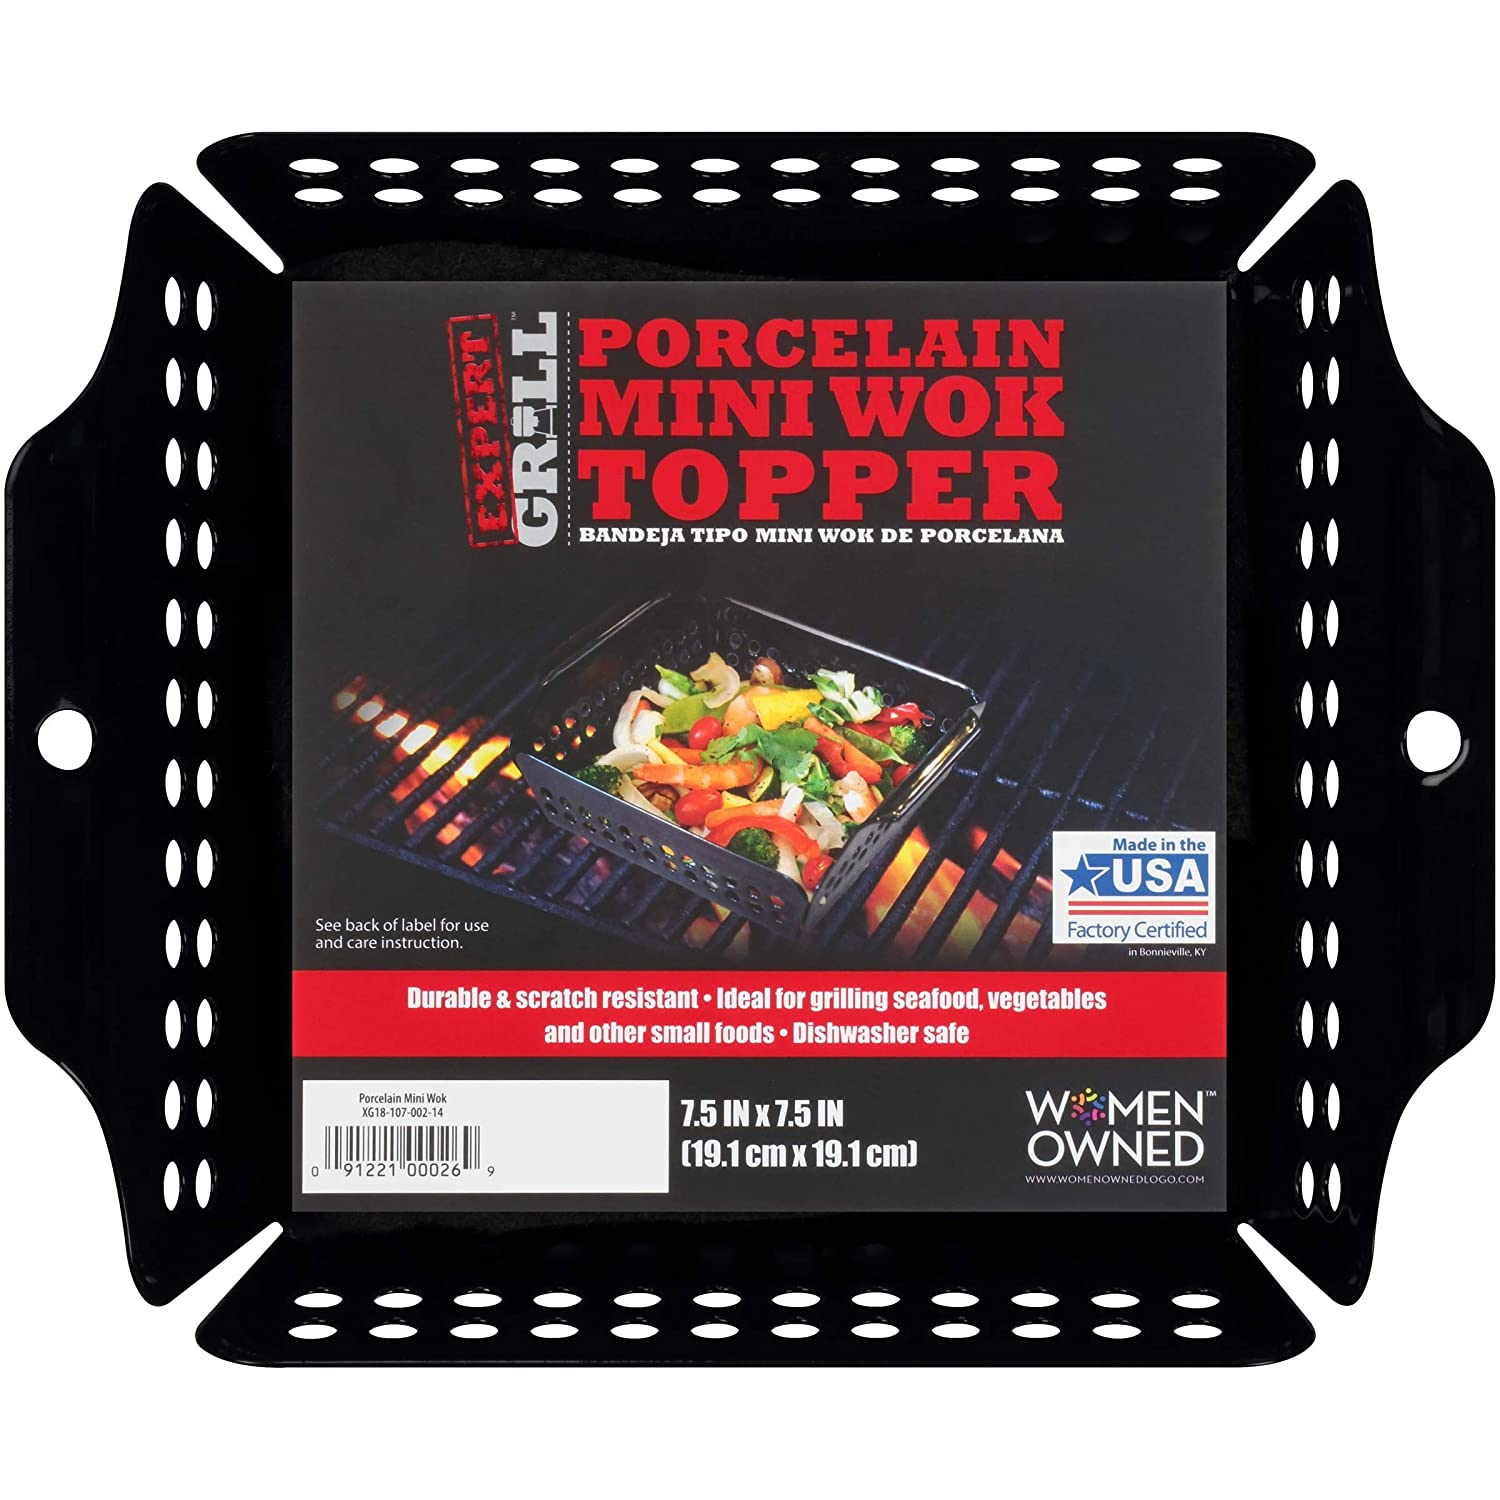 Expert Grill Porcelain Mini Wok Topper Made in USA